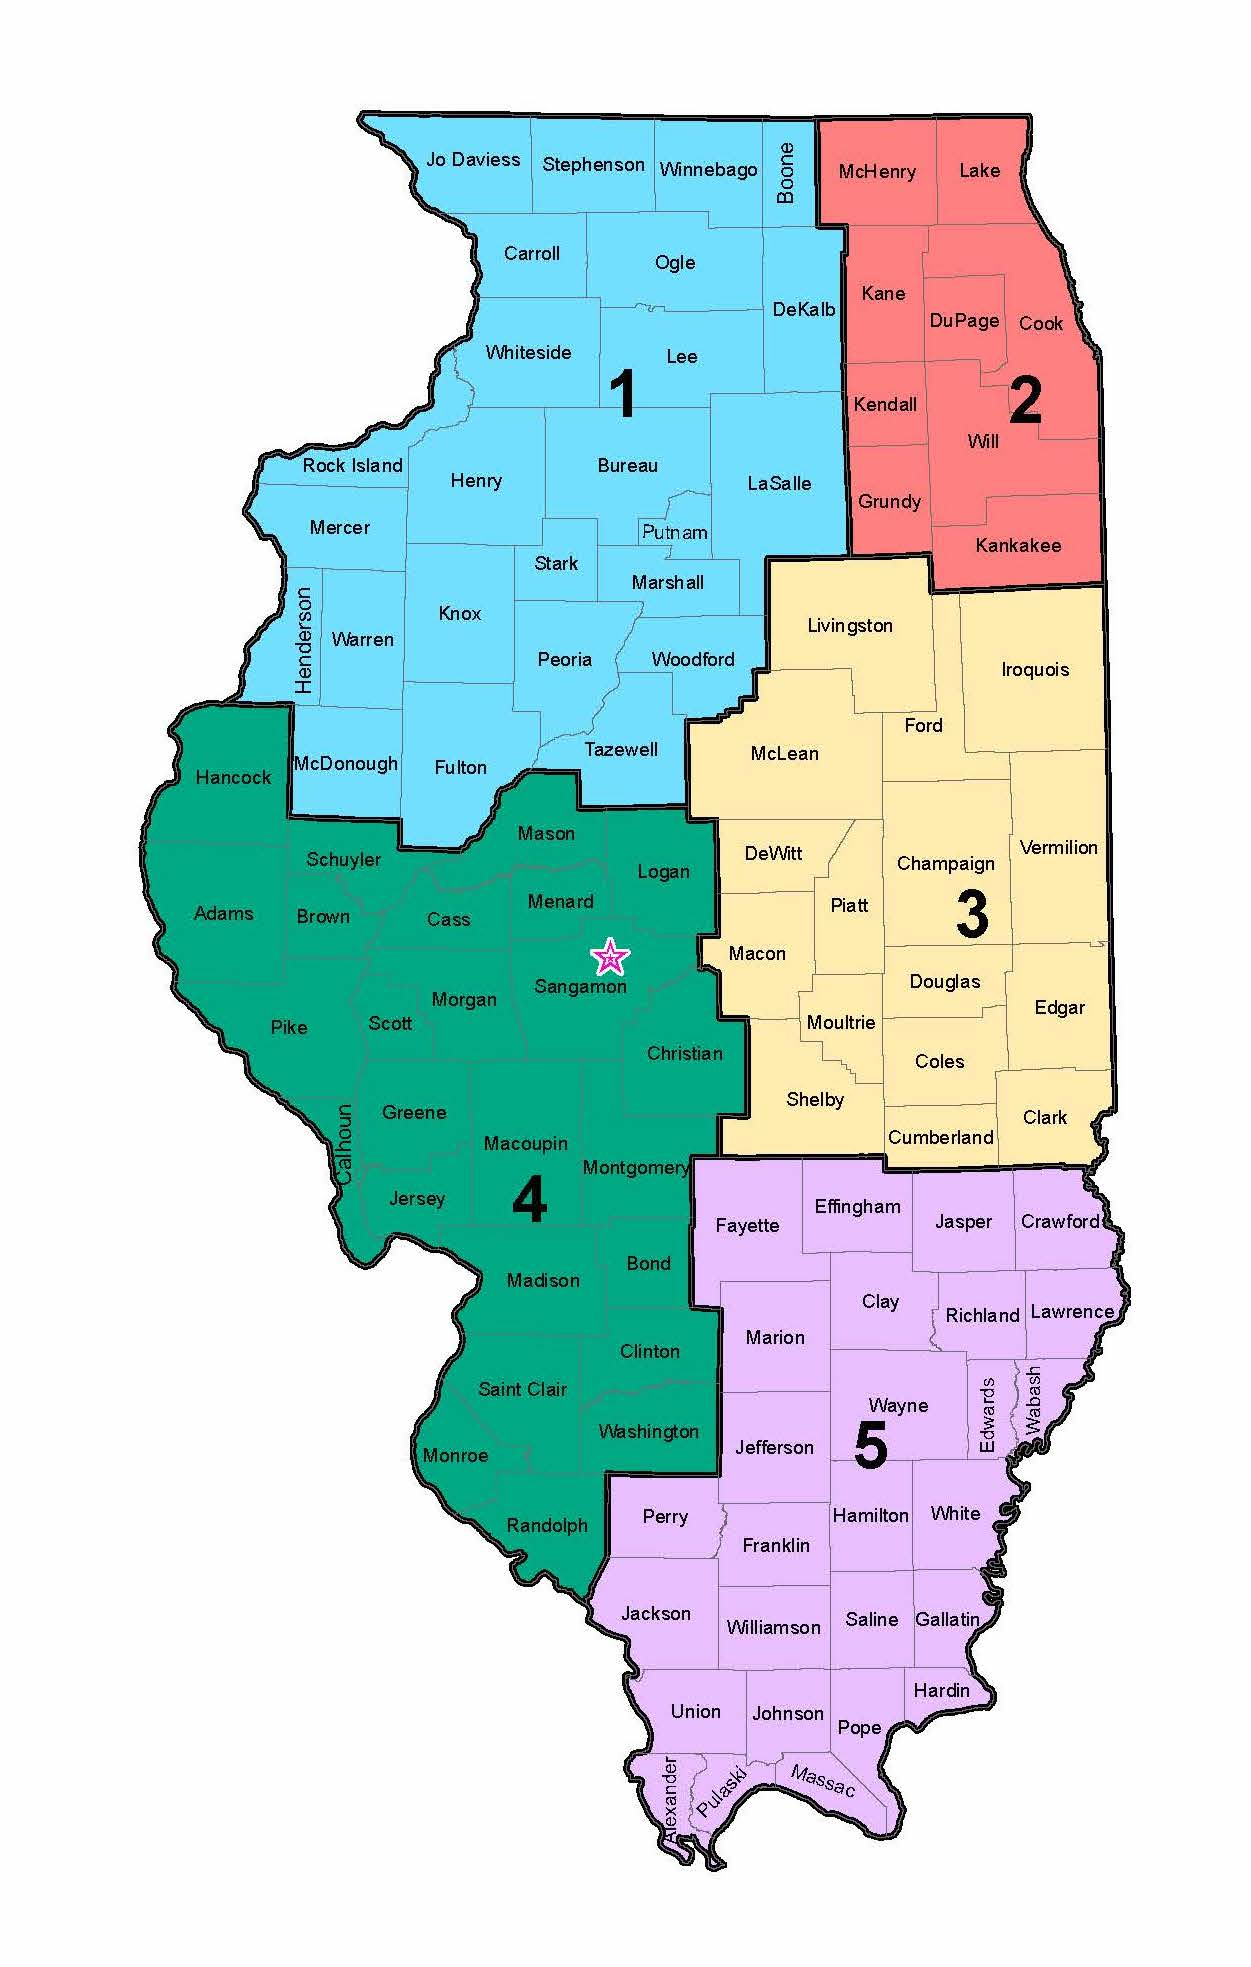 A map of the state of Illinois divided into 5 separate regions.